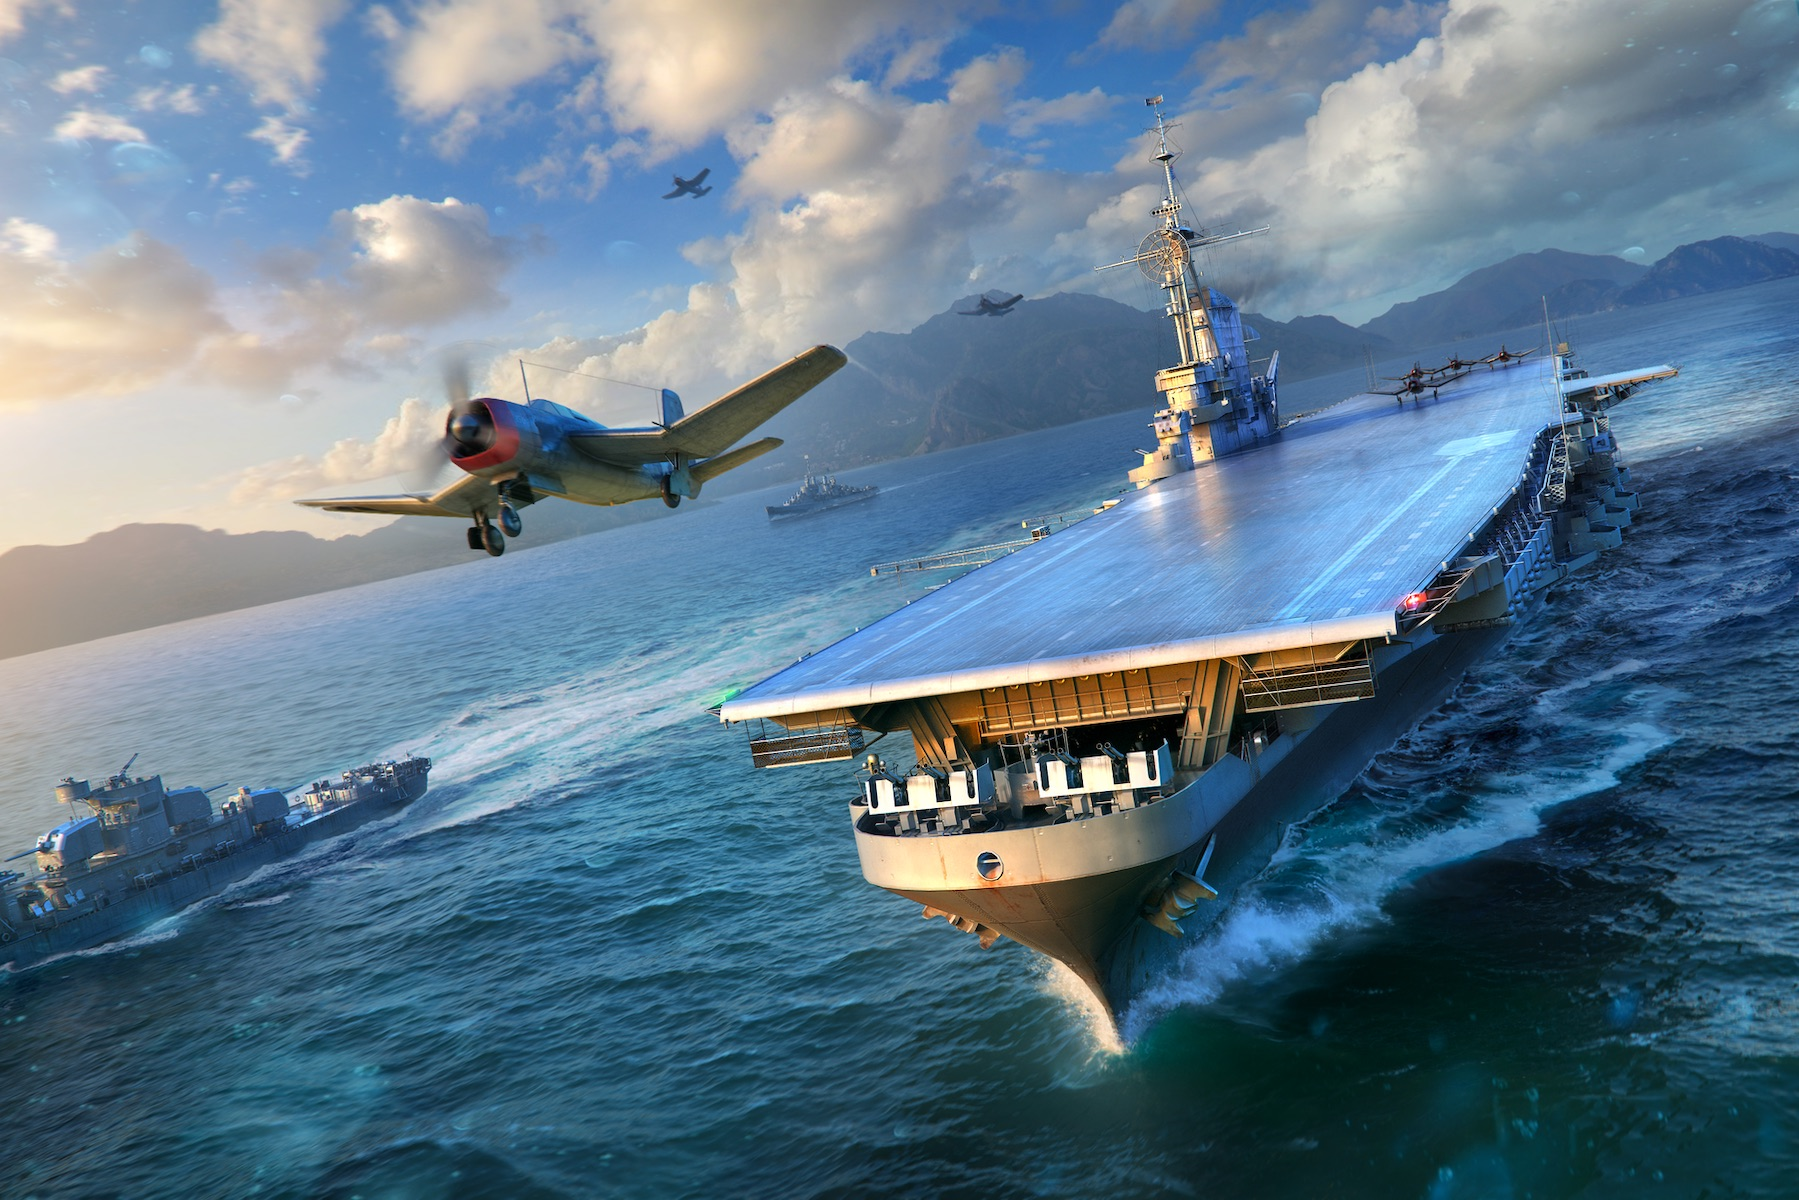 'World of Warships' Recreates the Battle of Midway